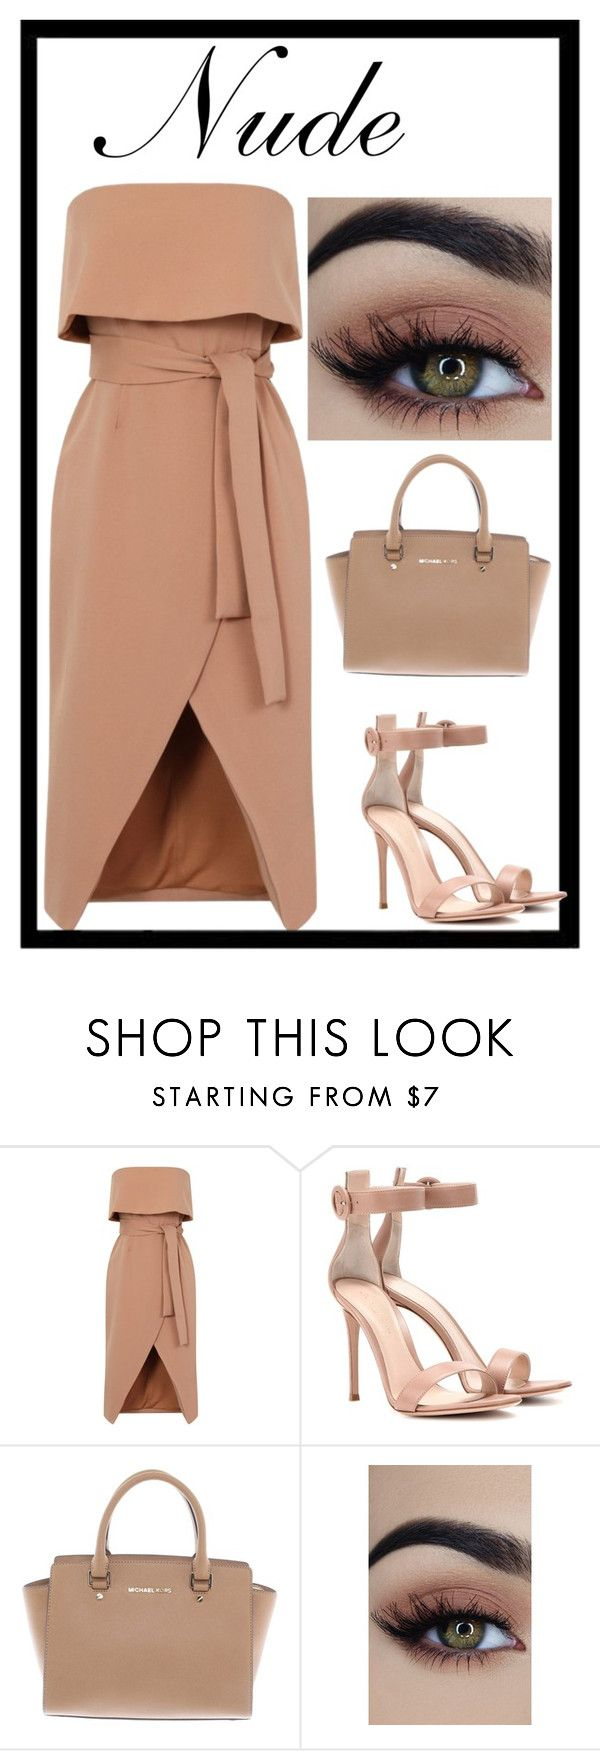 """""""-Nude-"""" by gucci-af ❤ liked on Polyvore featuring Gianvito Rossi, Michael Kors and nude"""